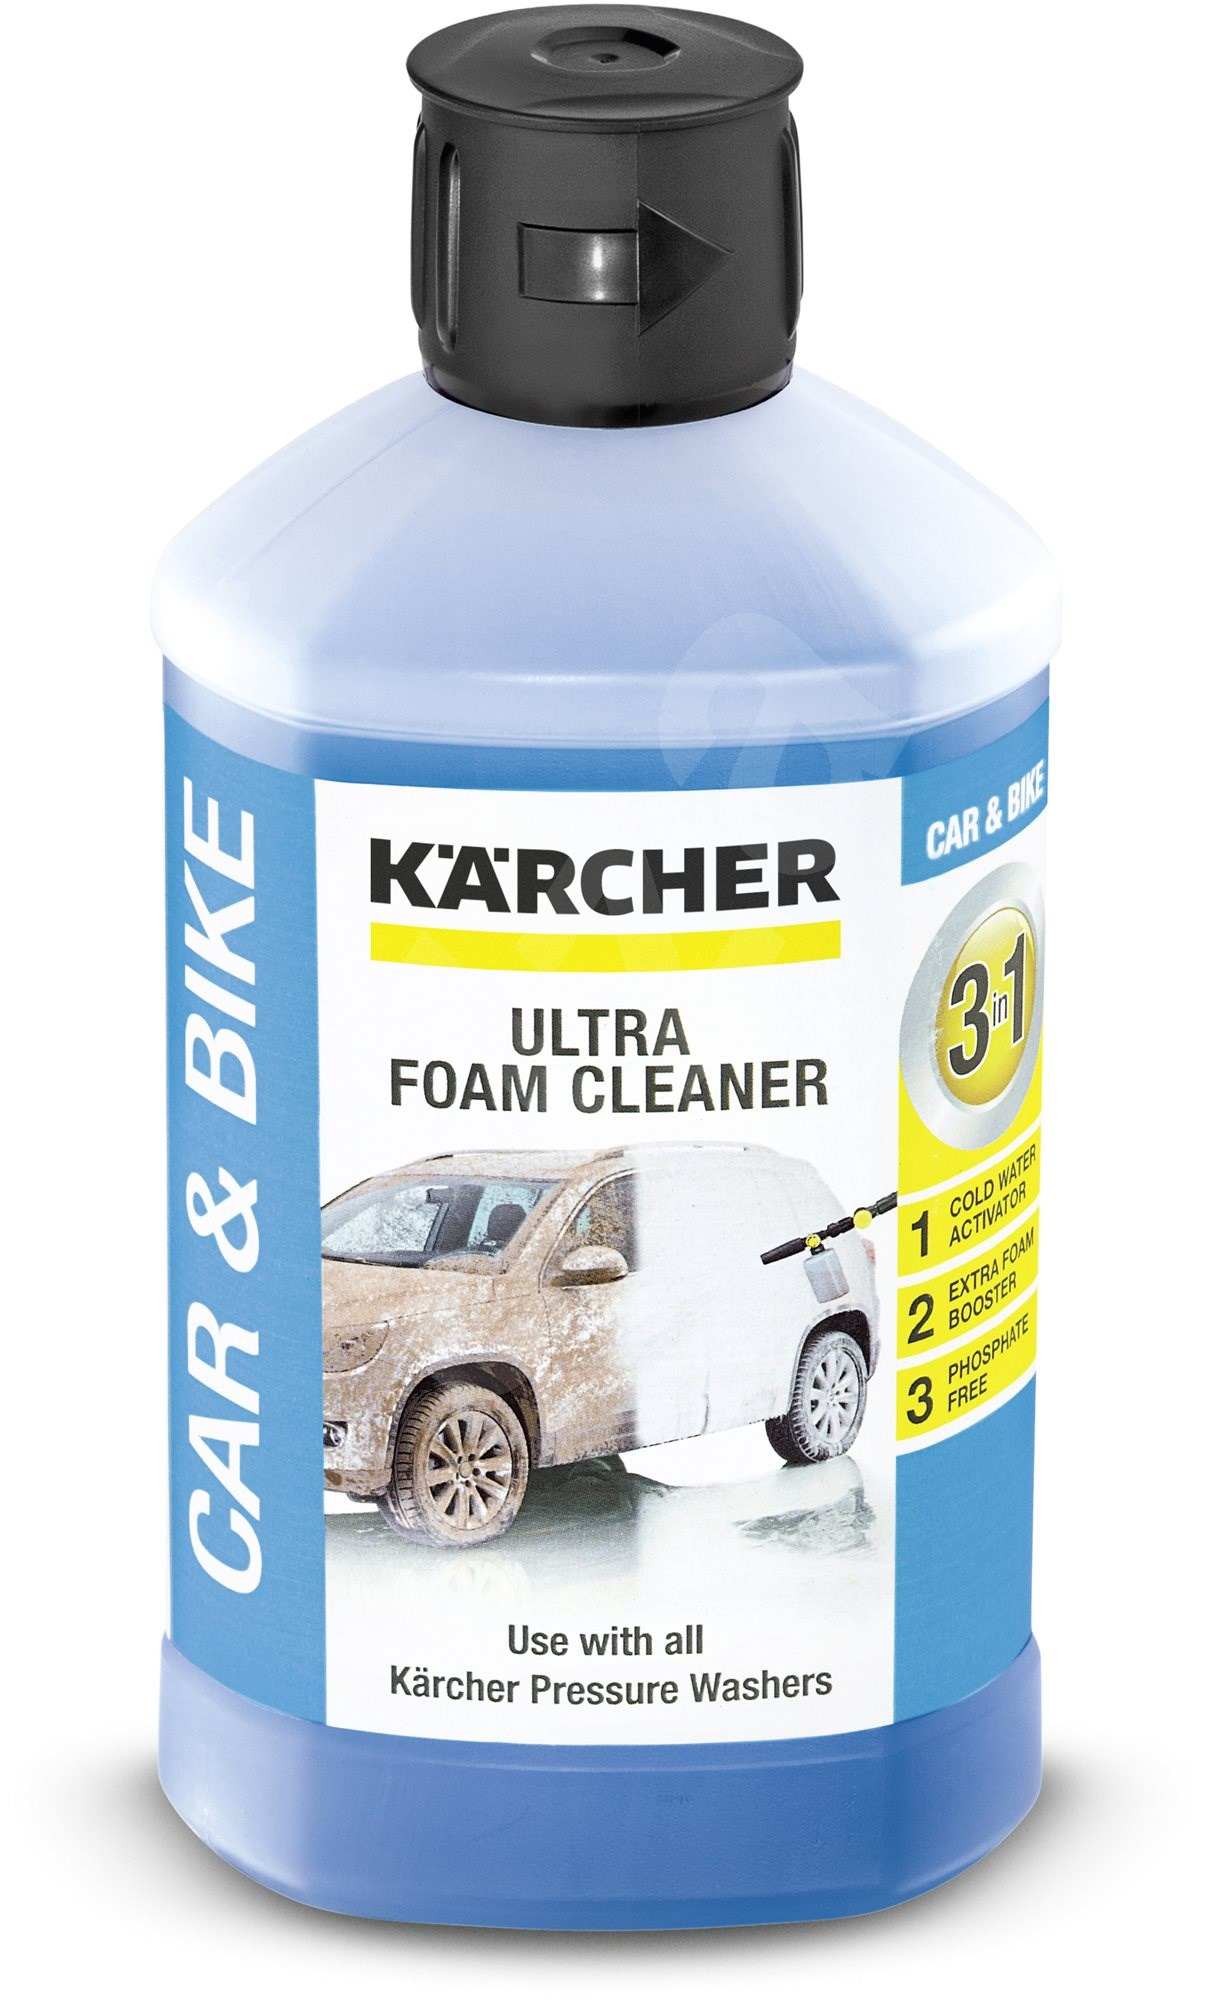 Аксессуар для моек Karcher, автошампунь, Ultra Foam Cleaner, моющее средство,1л